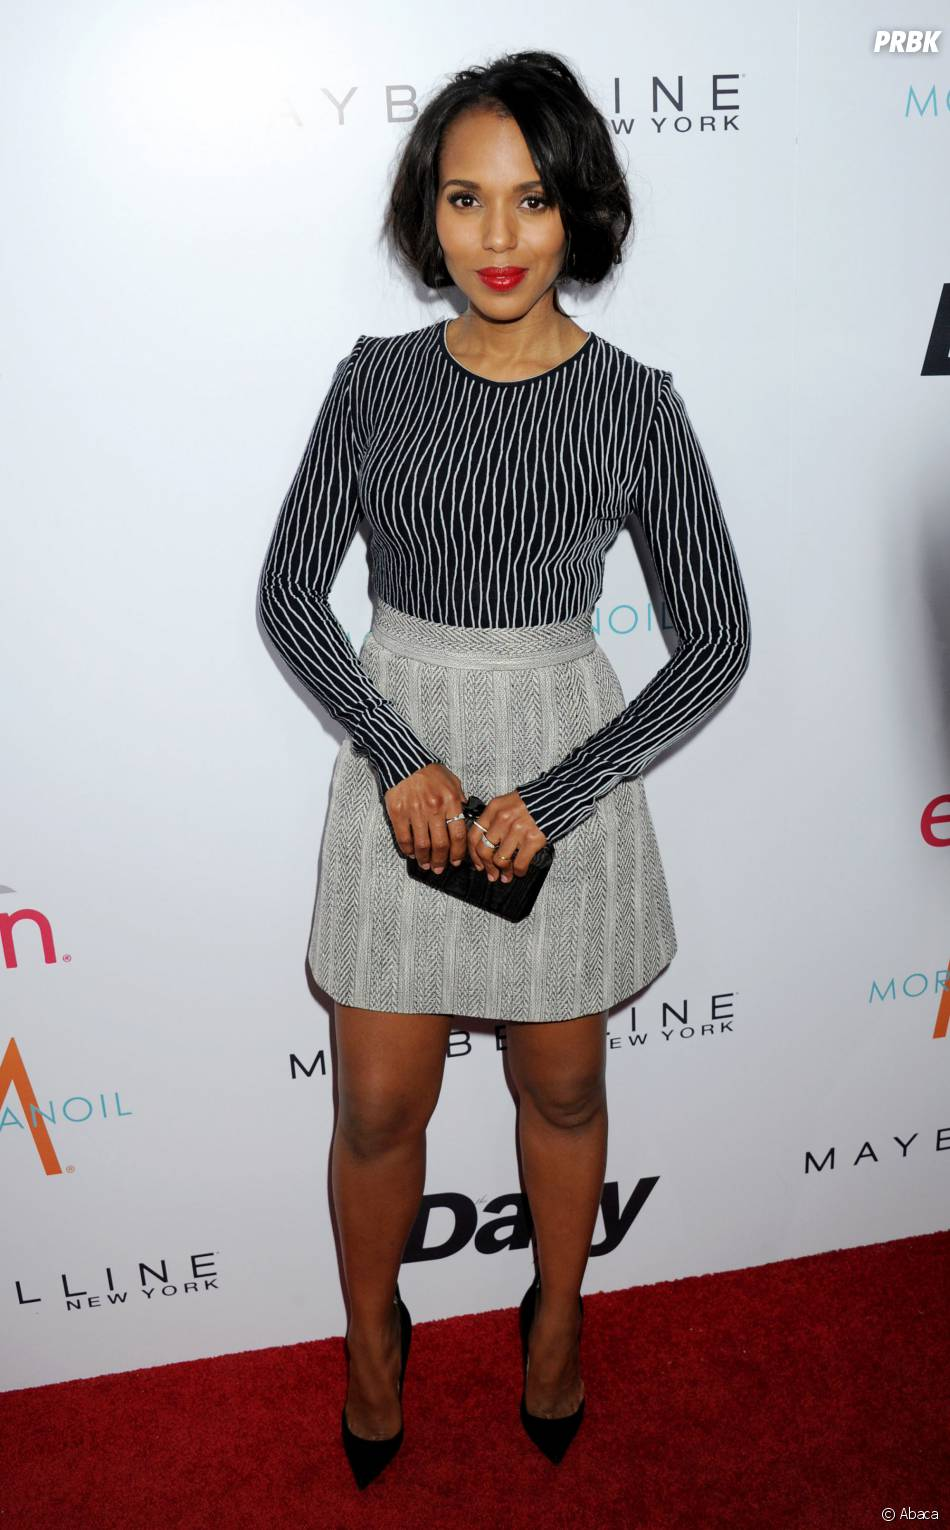 Kerry Washington sexy à la cérémonie des Fashion LA Awards le 22 janvier 2015 à Los Angeles